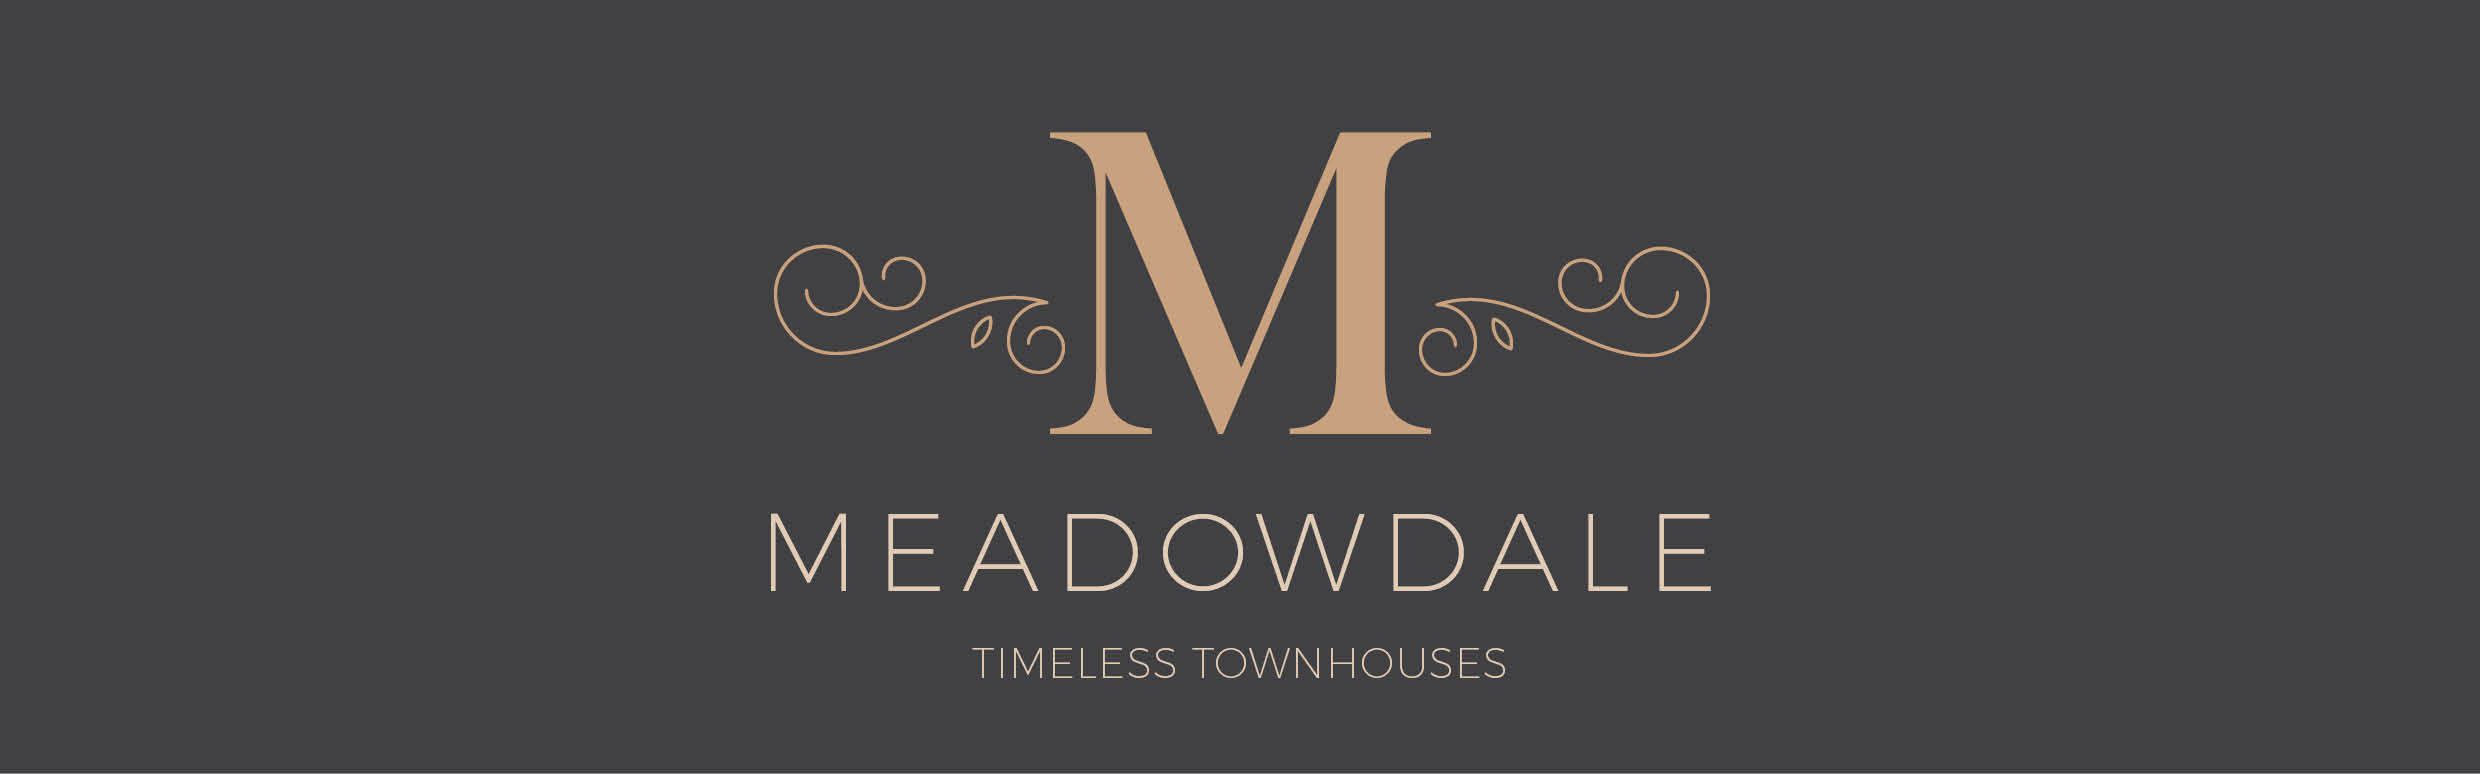 Meadowdale email header